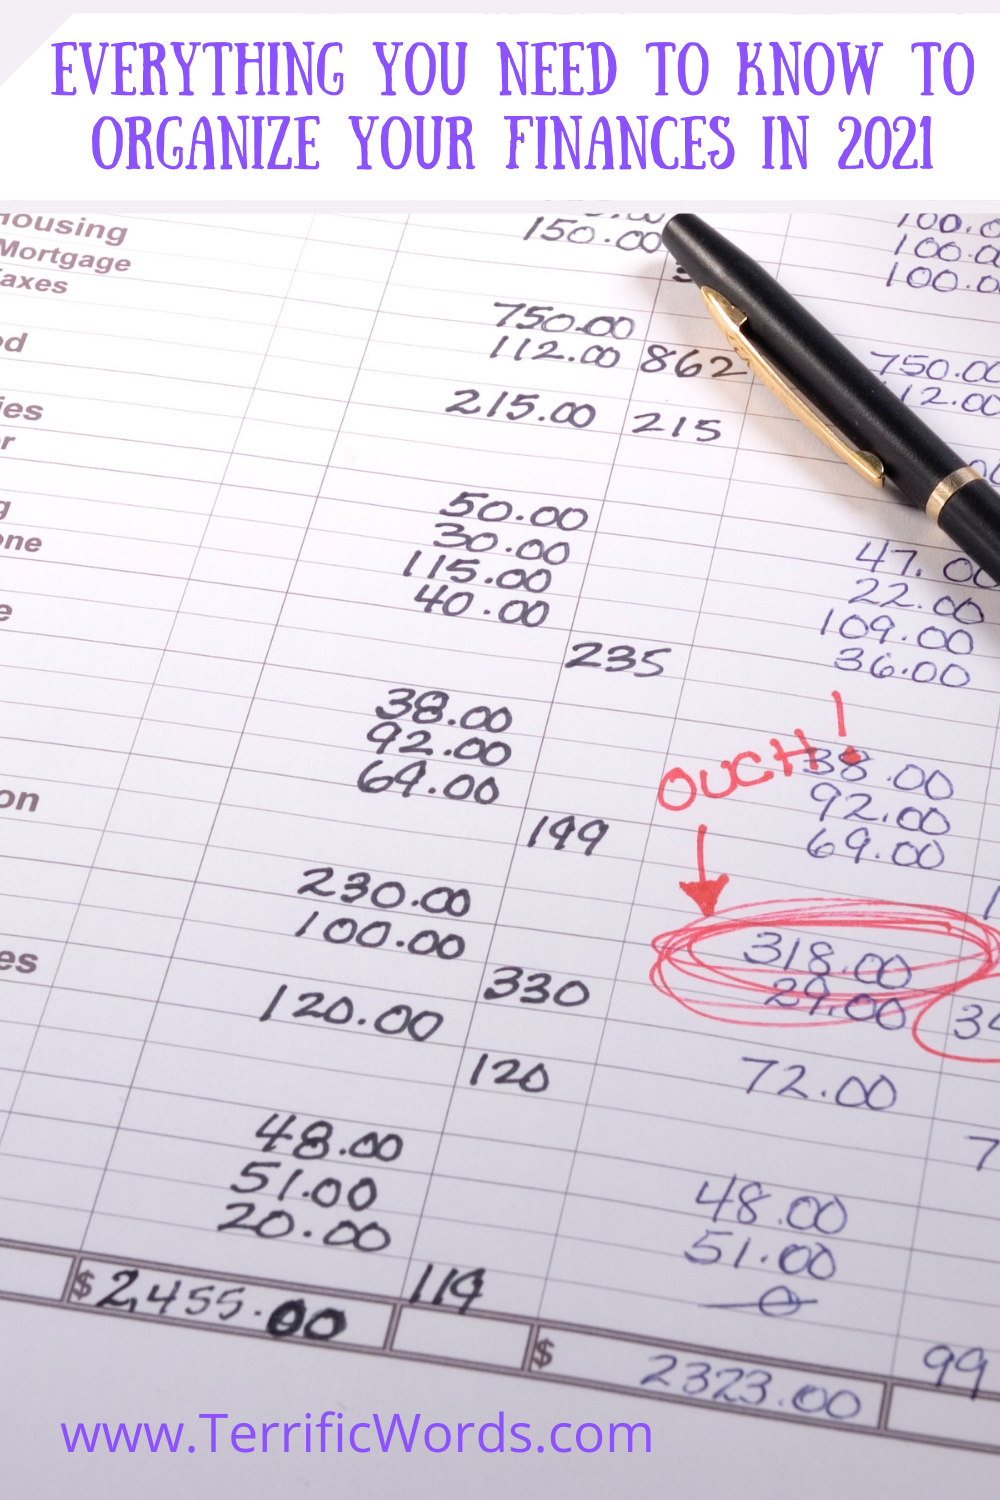 Everything You Need to Know to Organize Finances in 2021